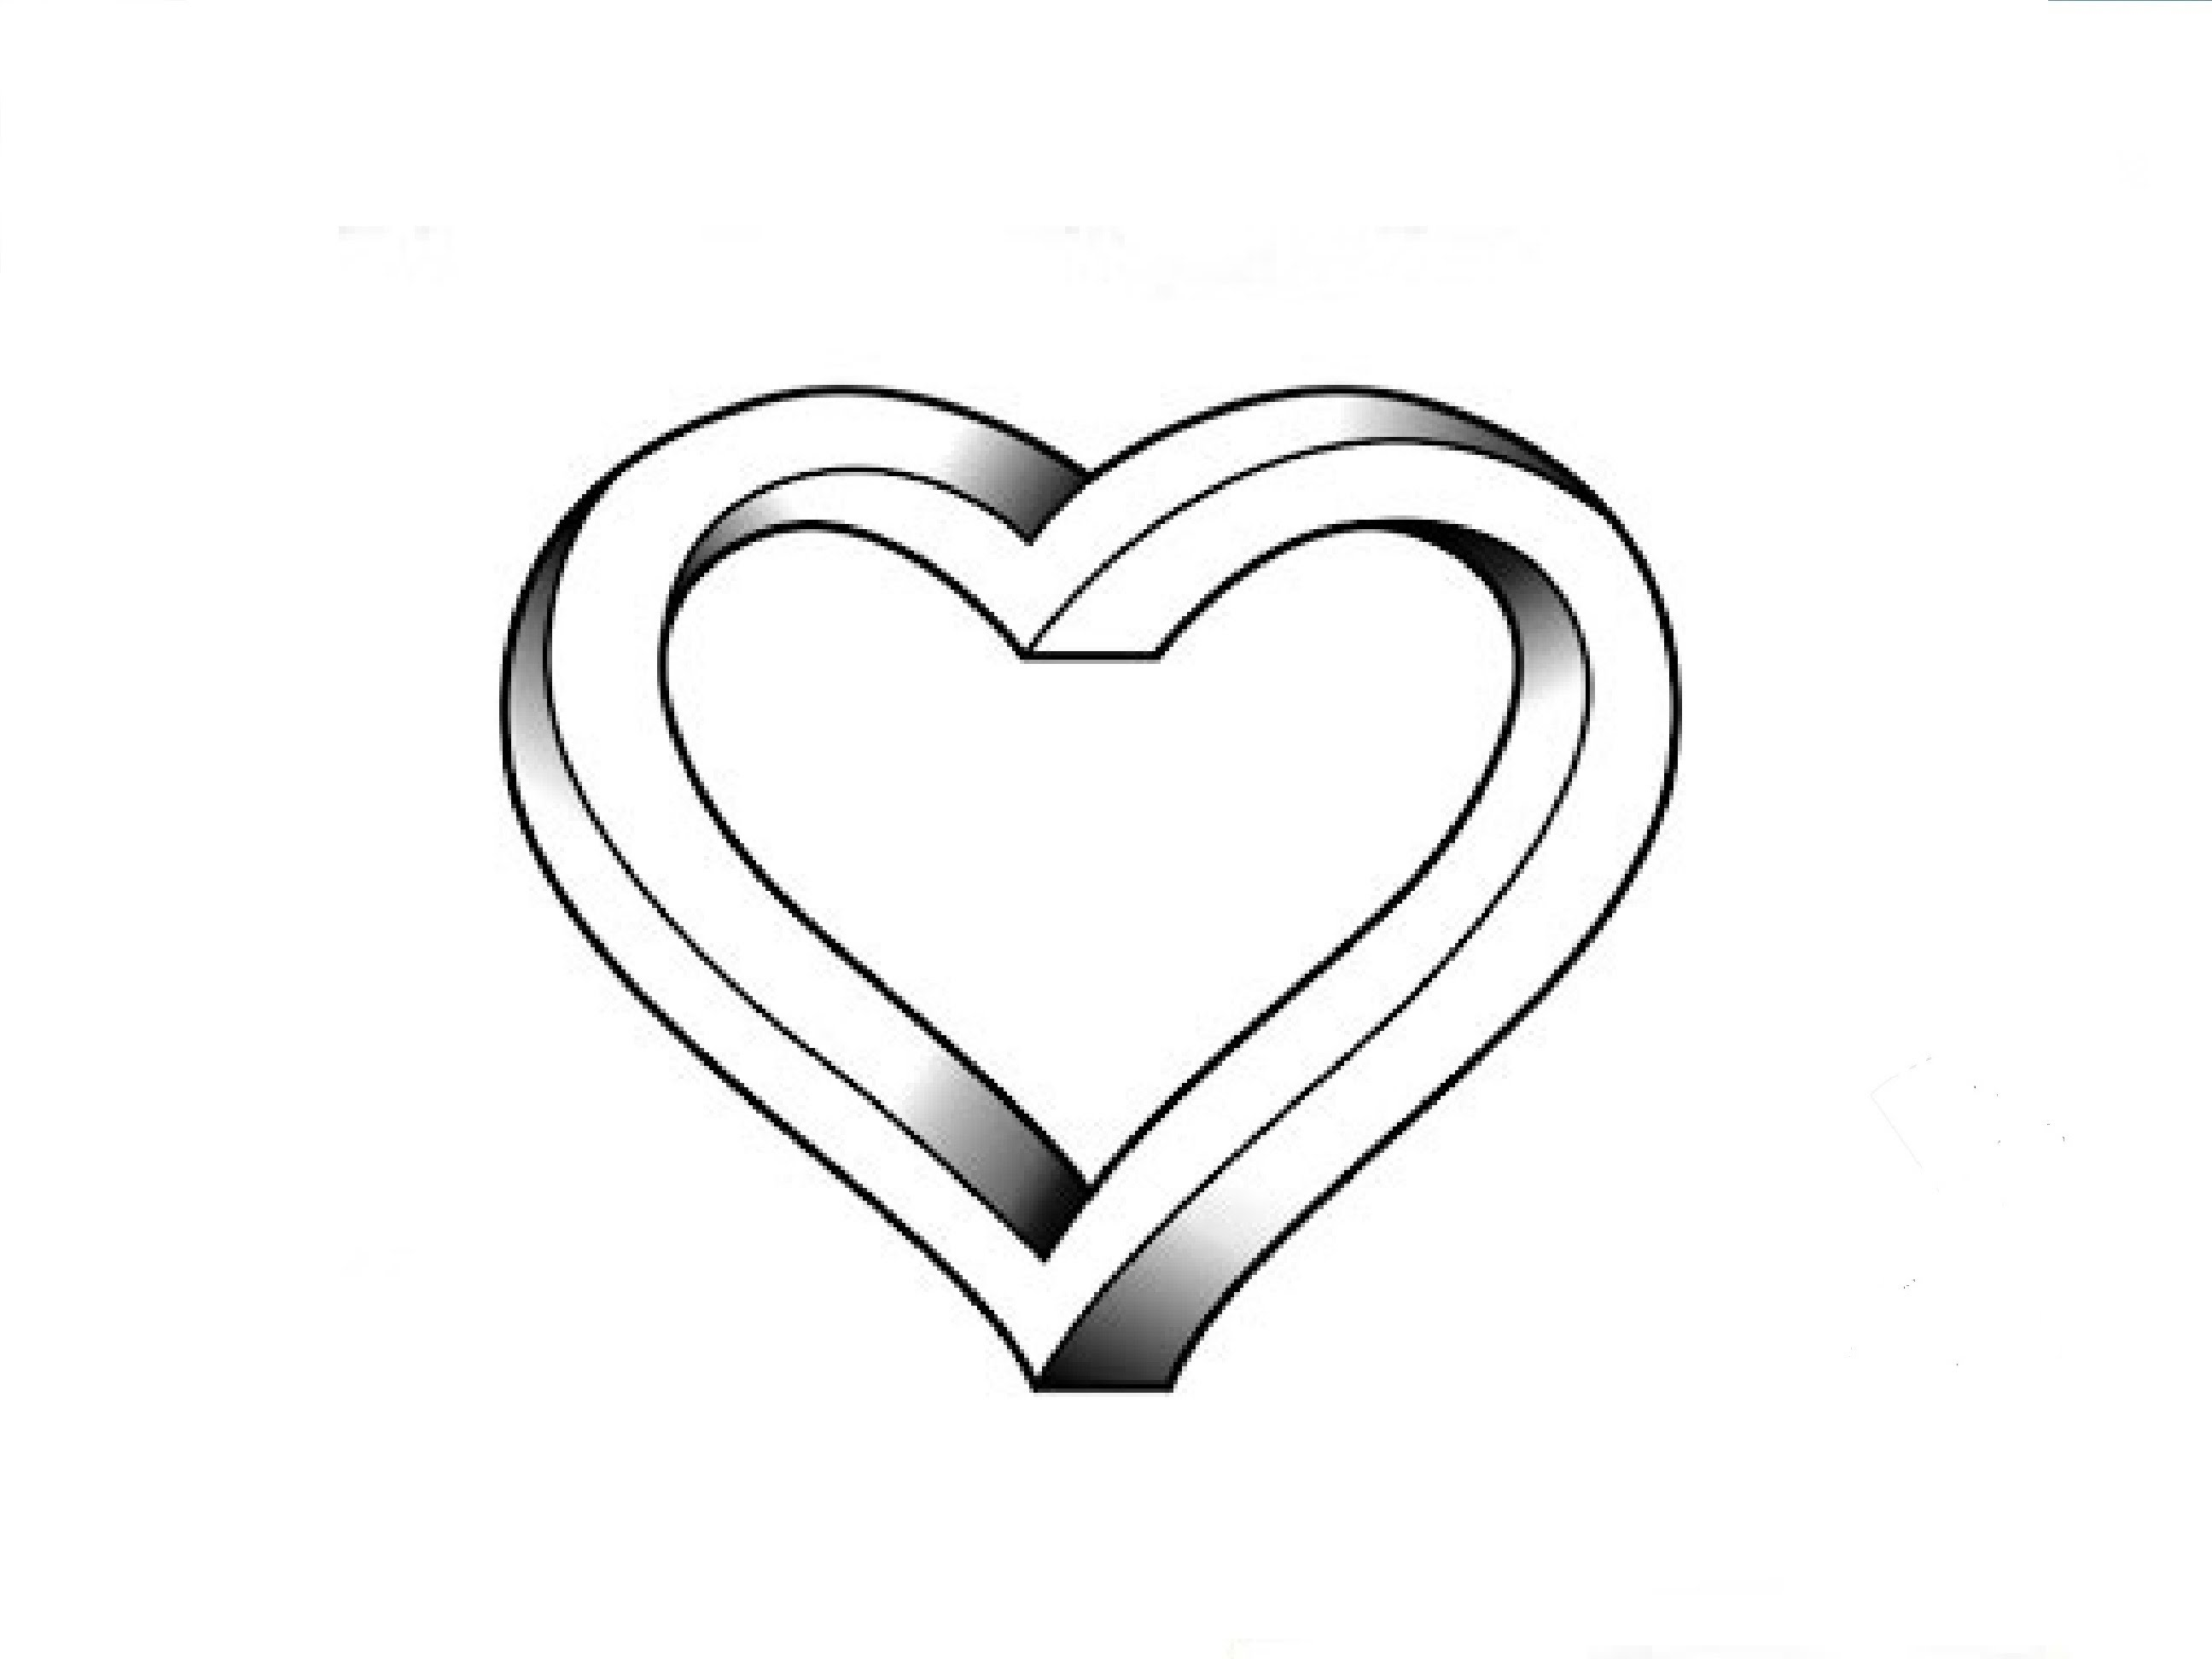 Line Drawing Heart At Getdrawings Com Free For Personal Use Line